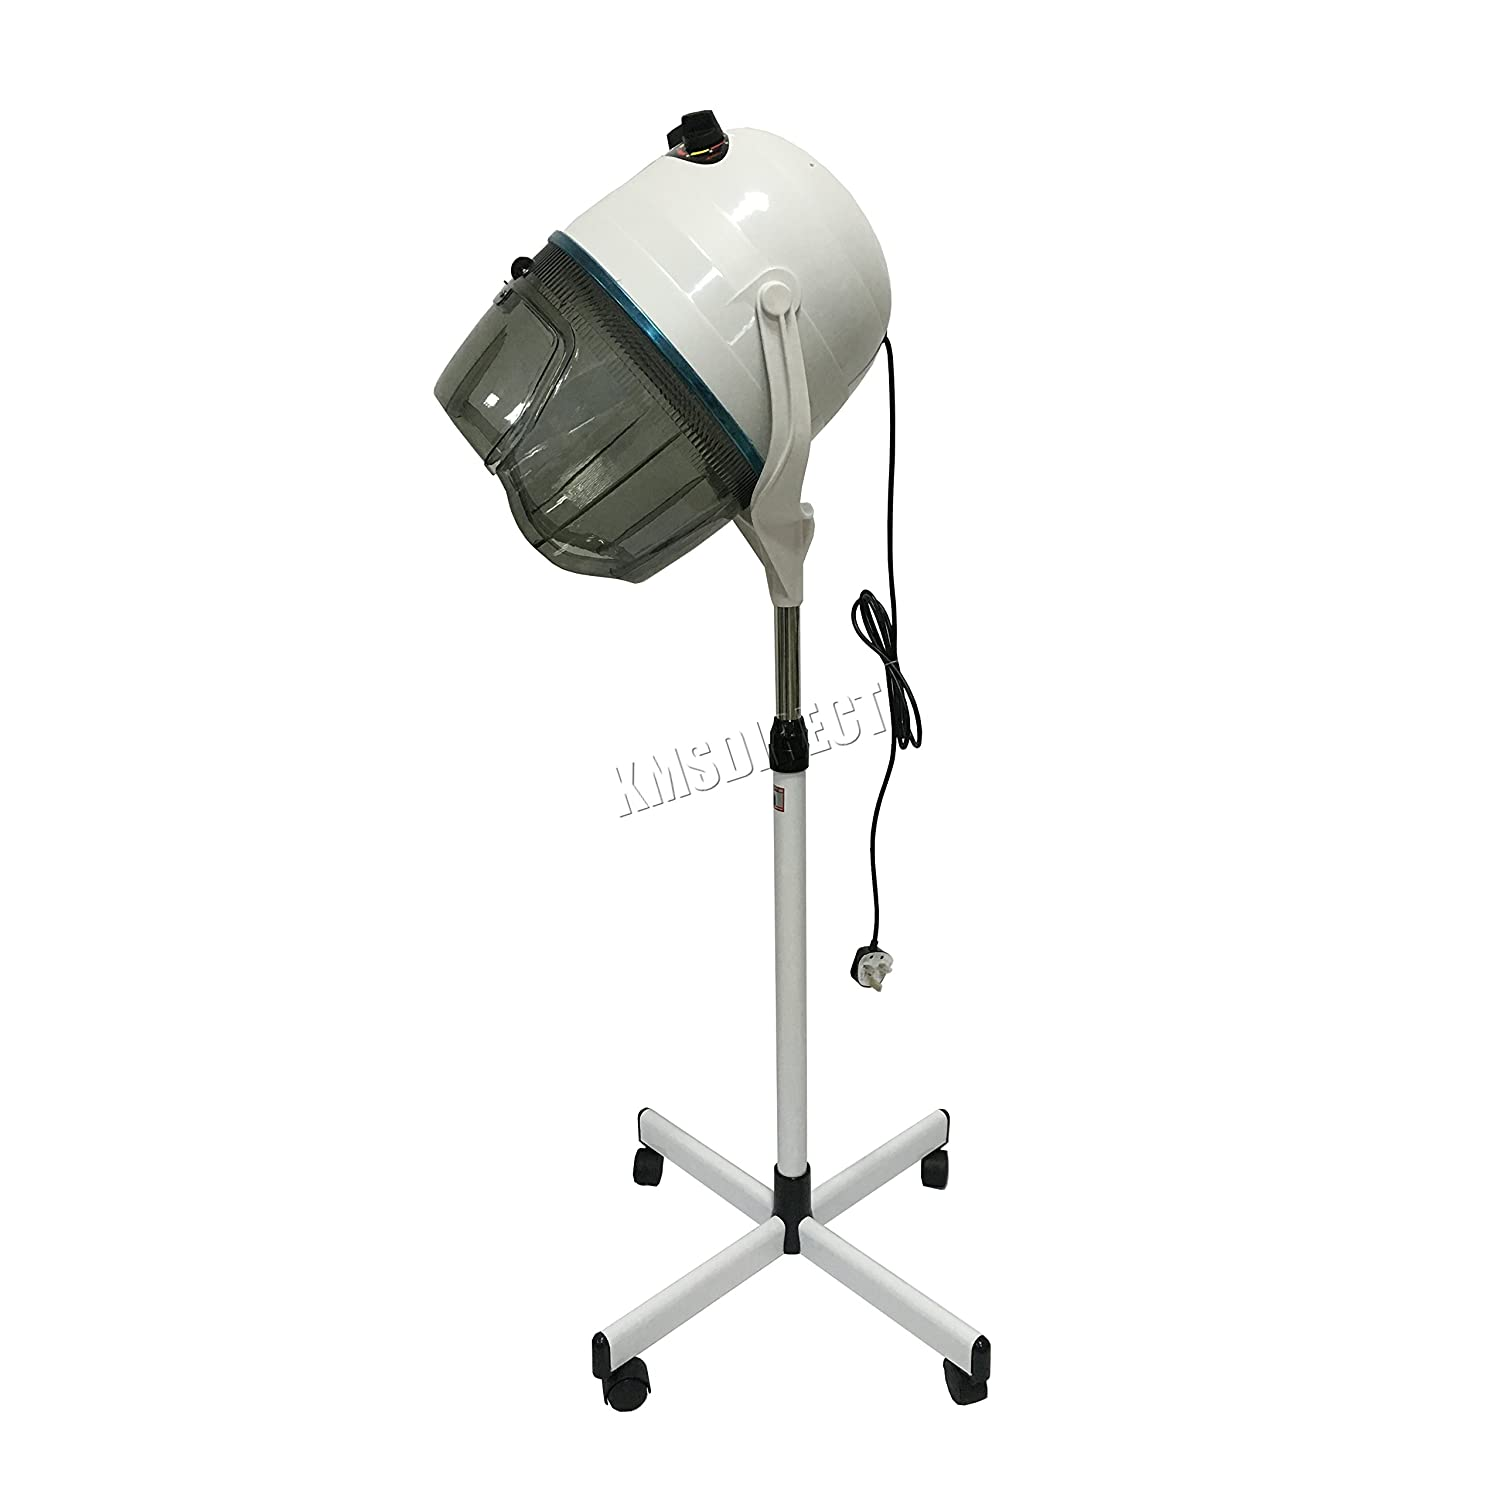 FoxHunter Portable Salon Hair Hood Dryer Stand Up Bonnet Professional Hairdresser Styling Timer Temperature Adjustable White HHD-01 1000W New KMS